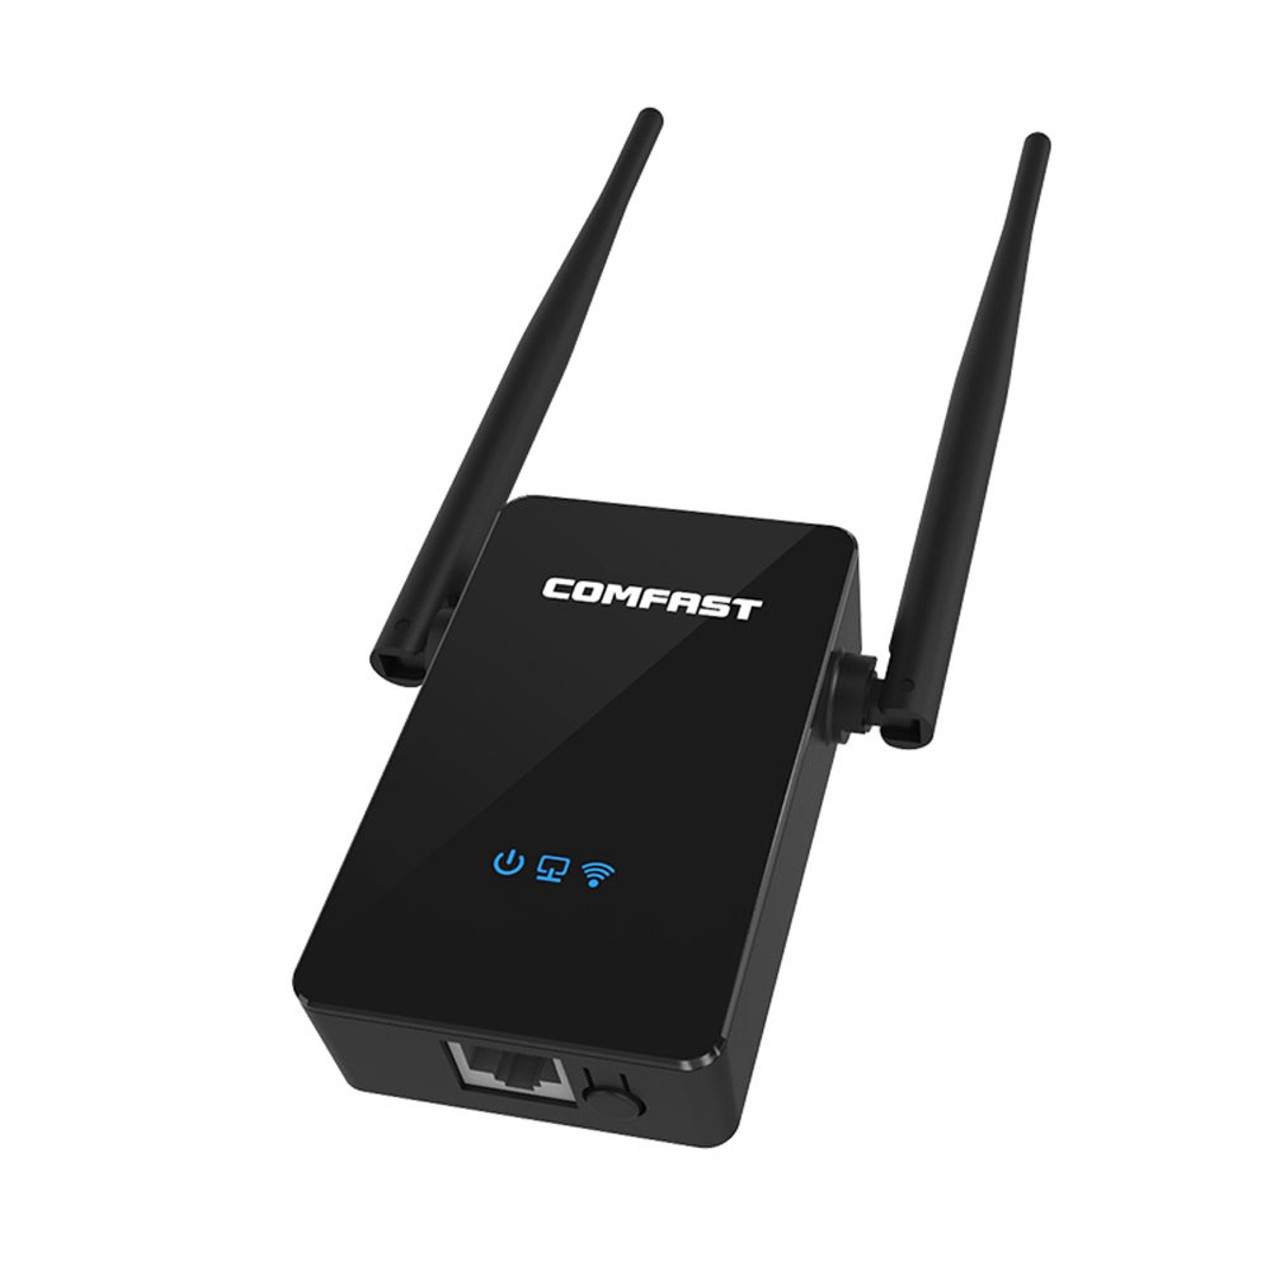 300Mbps Wireless Repeater Network Router AP WiFi Signal